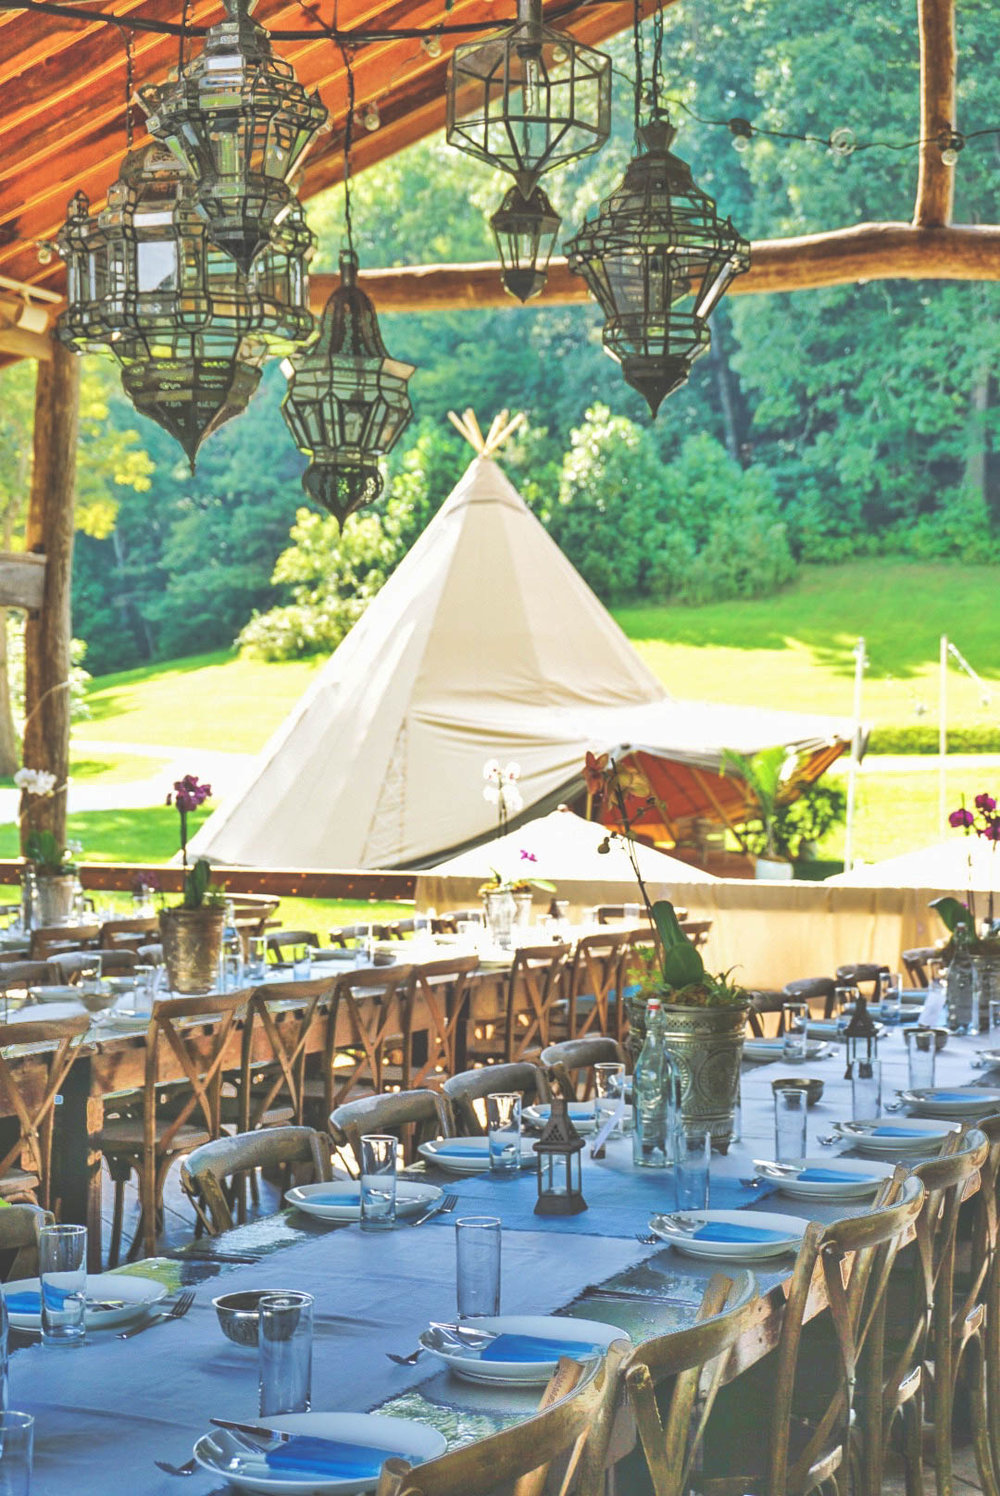 Simone + Danny's Moroccan Mountain Wedding in Asheville | Indah Events Tipi Rental